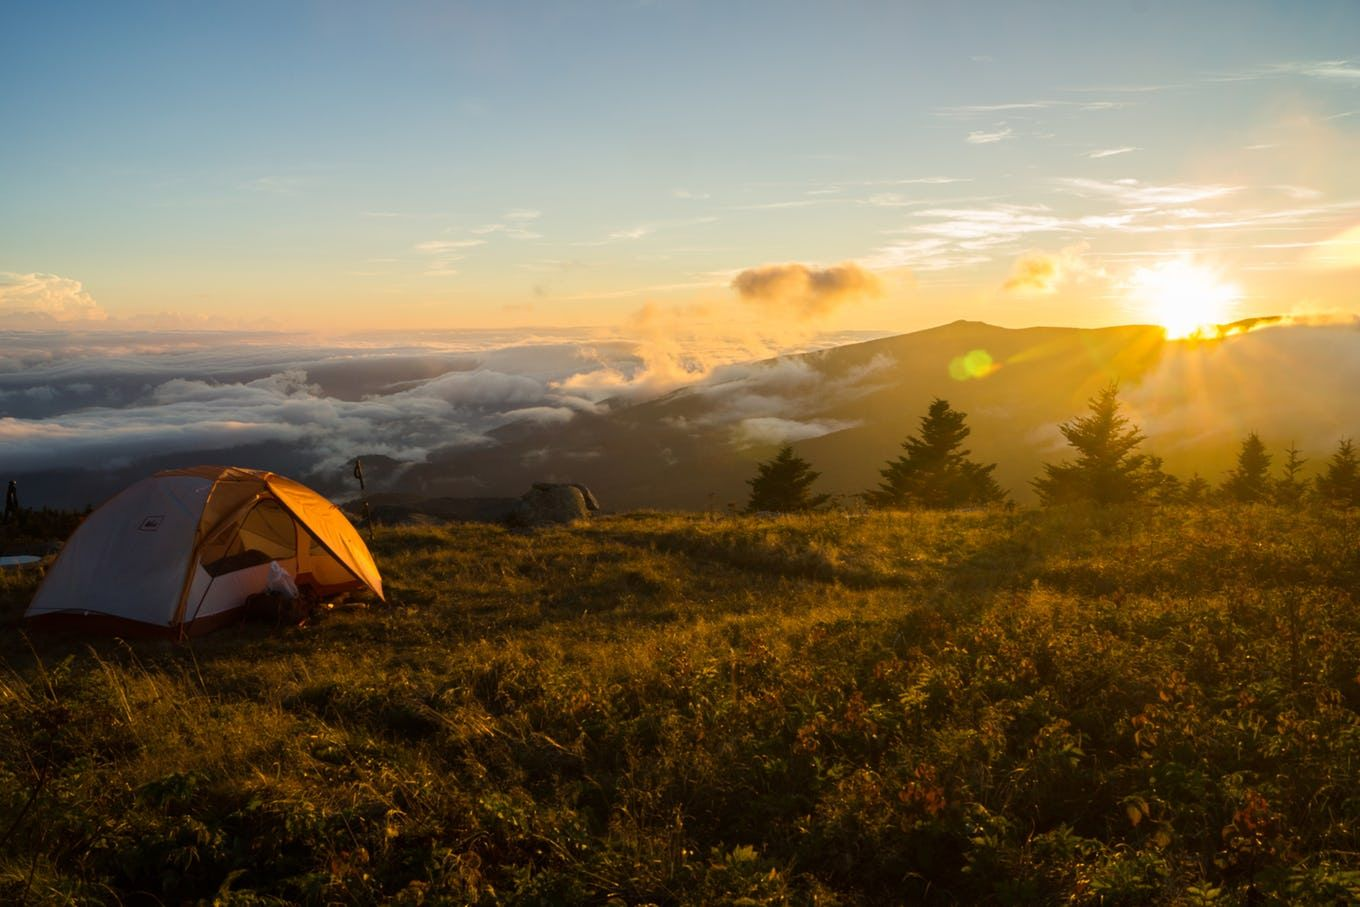 Hike to Grassy Ridge Bald in the Roan Highlands Camping